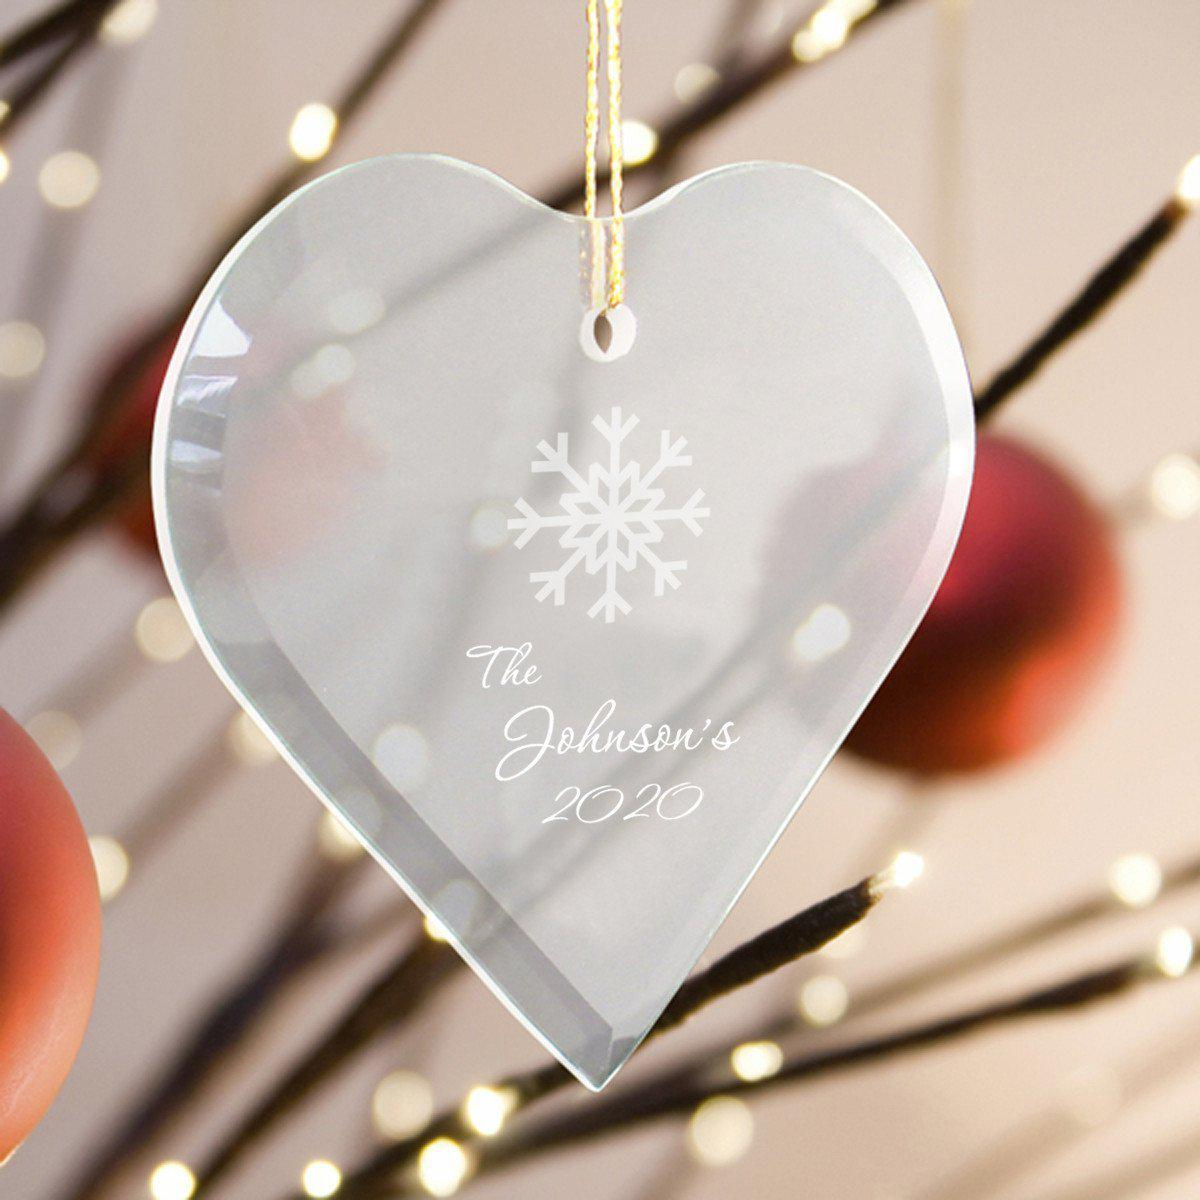 Personalized Ornament | Christmas Ornament | Heart Shape | Glass